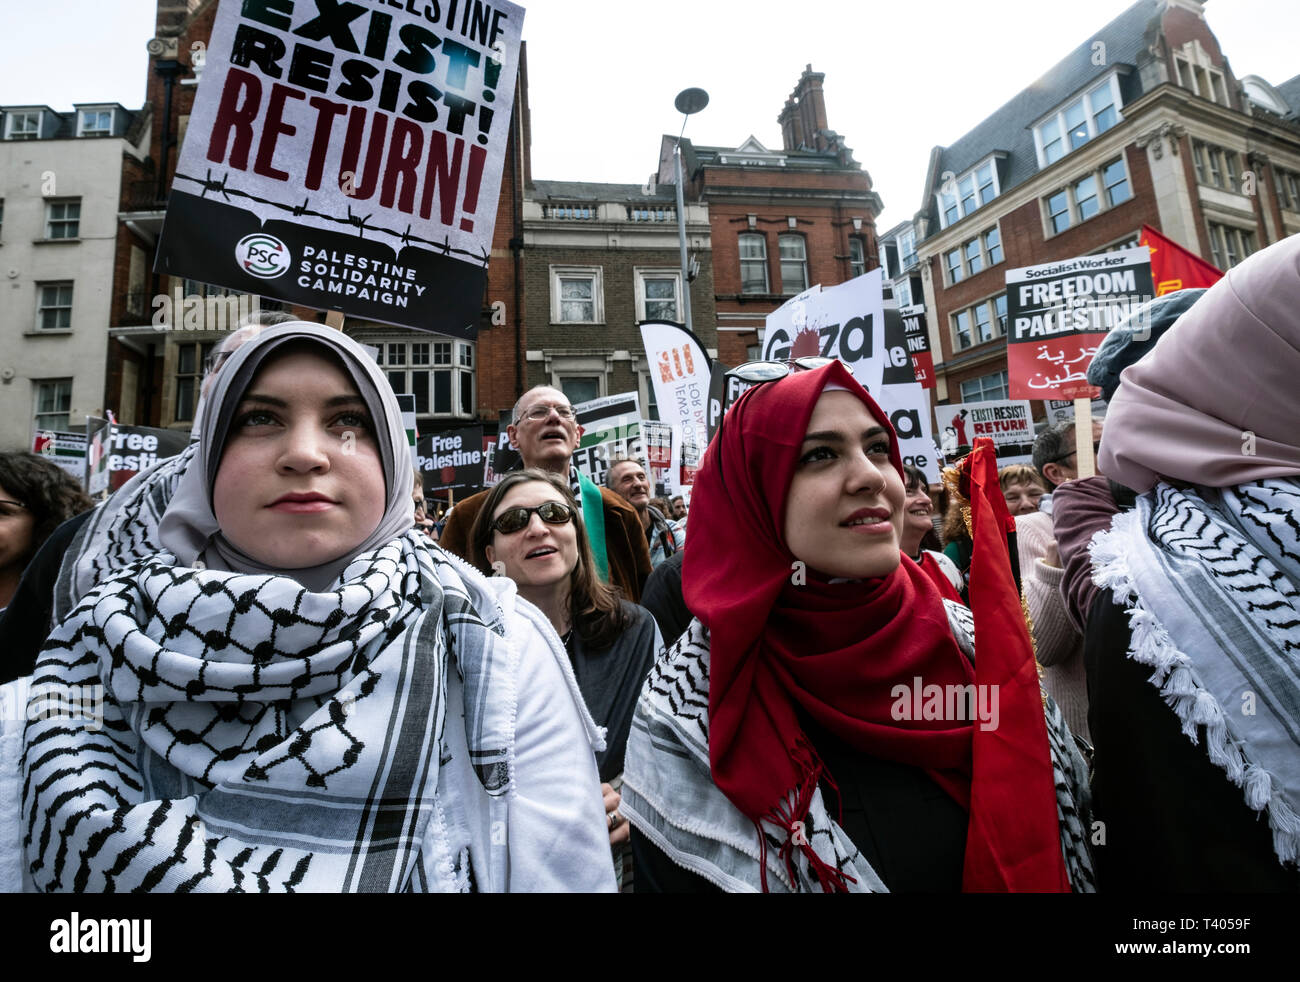 Rally for Palestine outside the Israeli Embassy: Exist,Resist, Return. A global call for solidarity on the 1st anniversary of the start of the Great Return March. Stock Photo